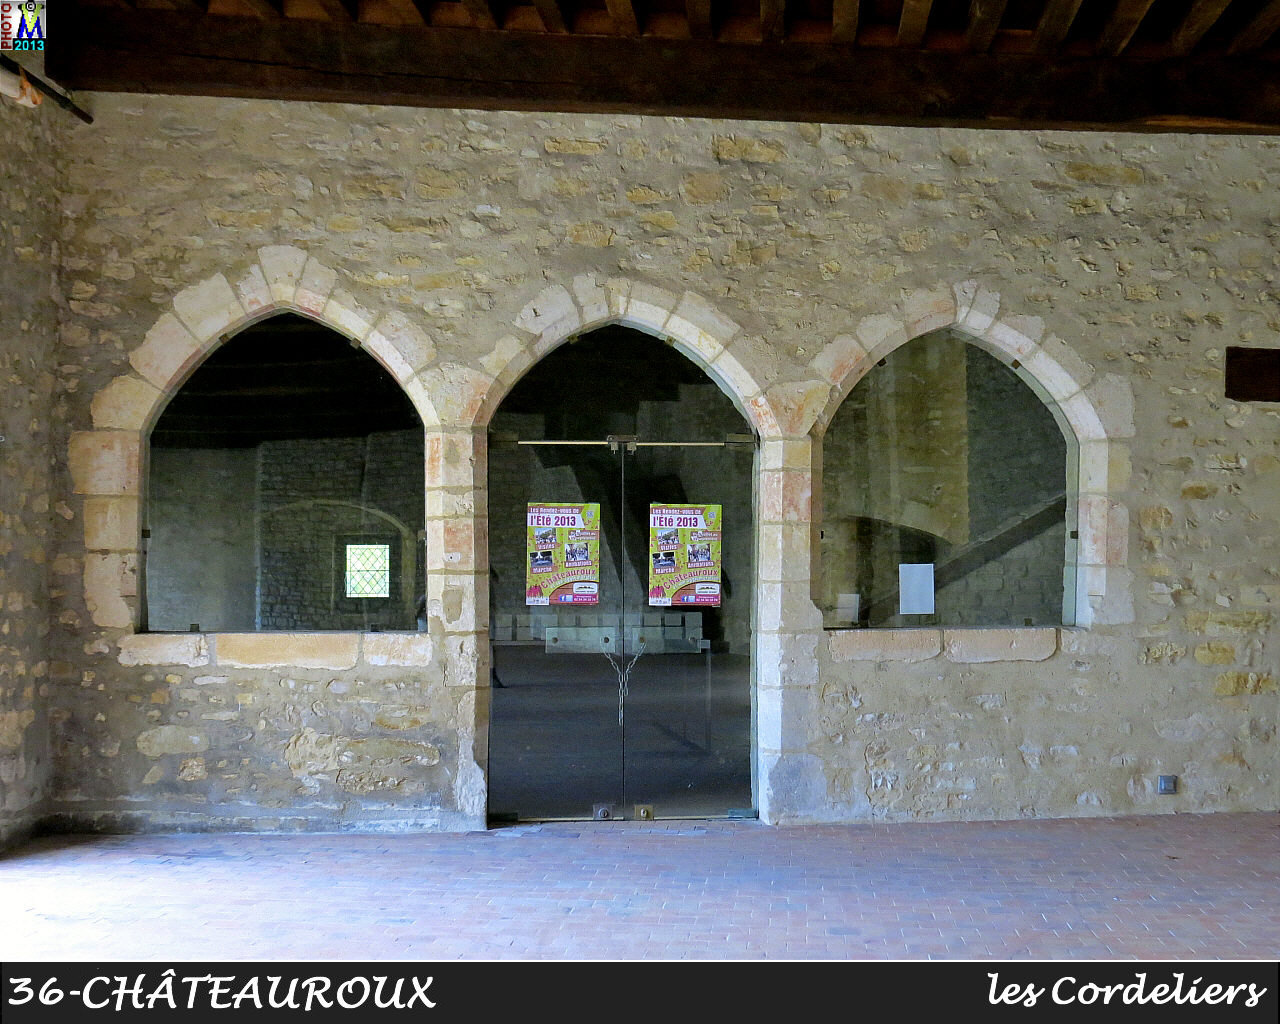 36CHATEAUROUX_cordeliers_108.jpg